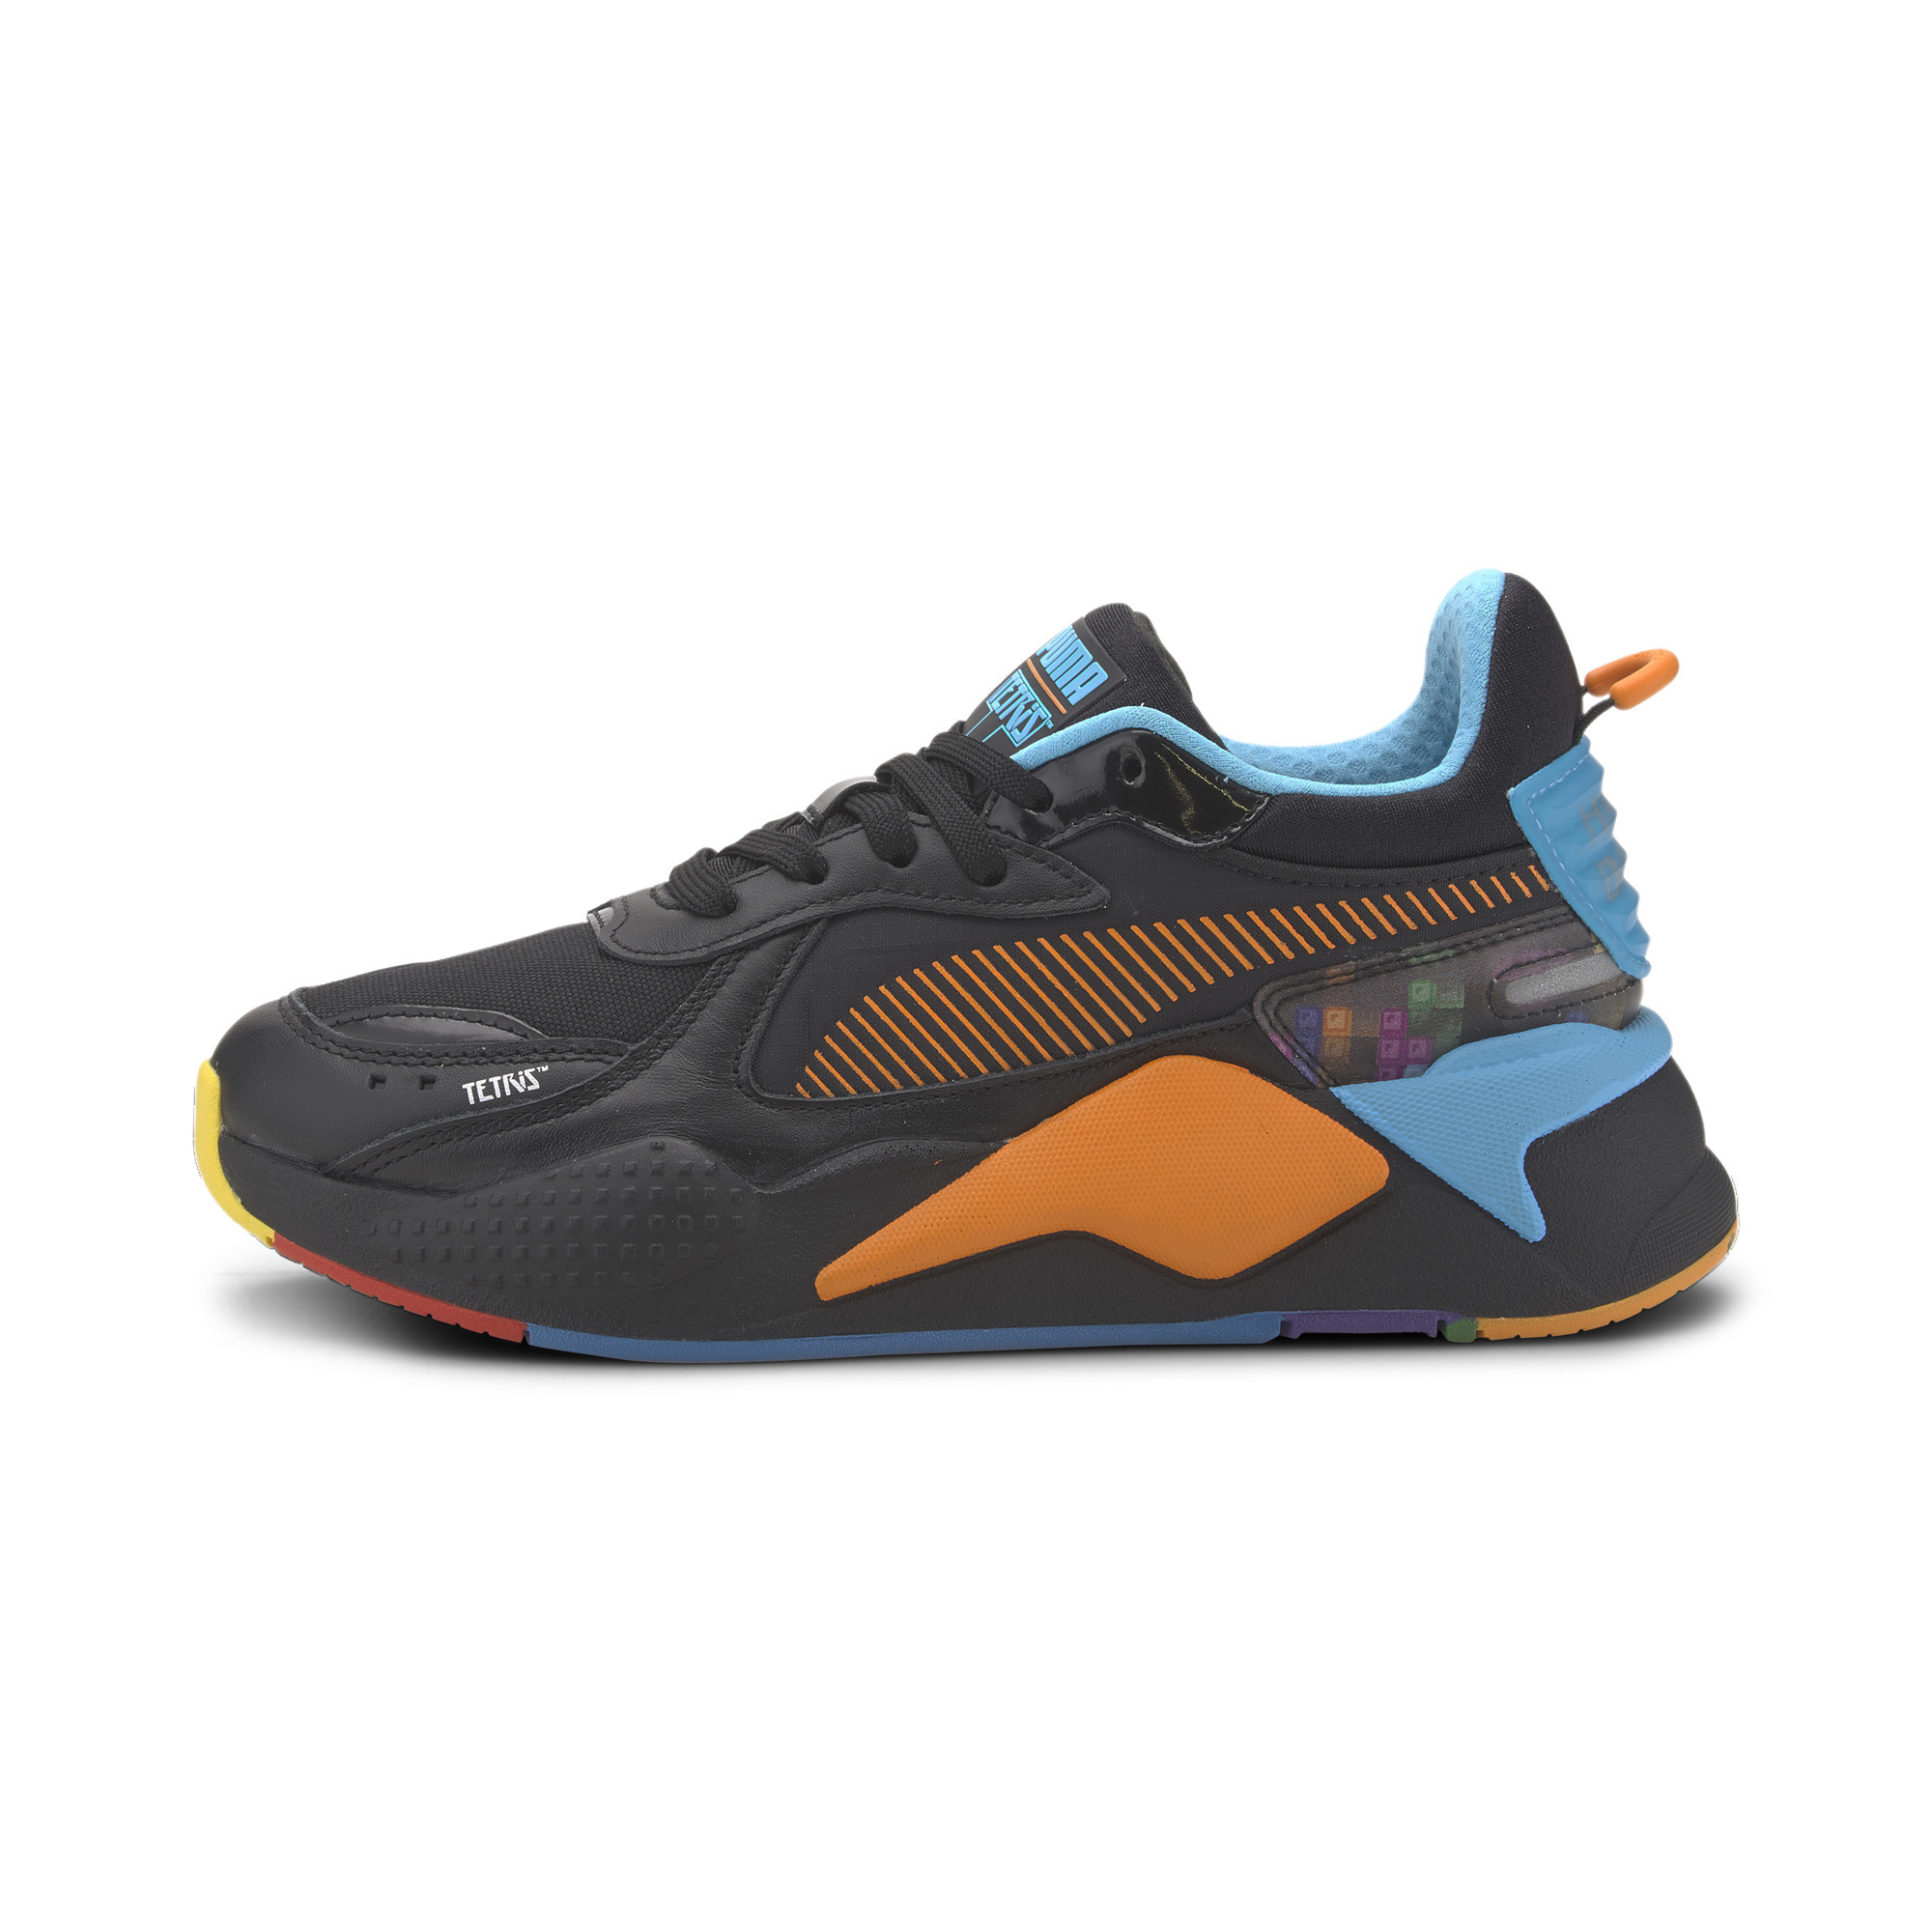 PUMA-PUMA-x-TETRIS-RS-X-Sneakers-JR-Kids-Shoe-Kids thumbnail 4